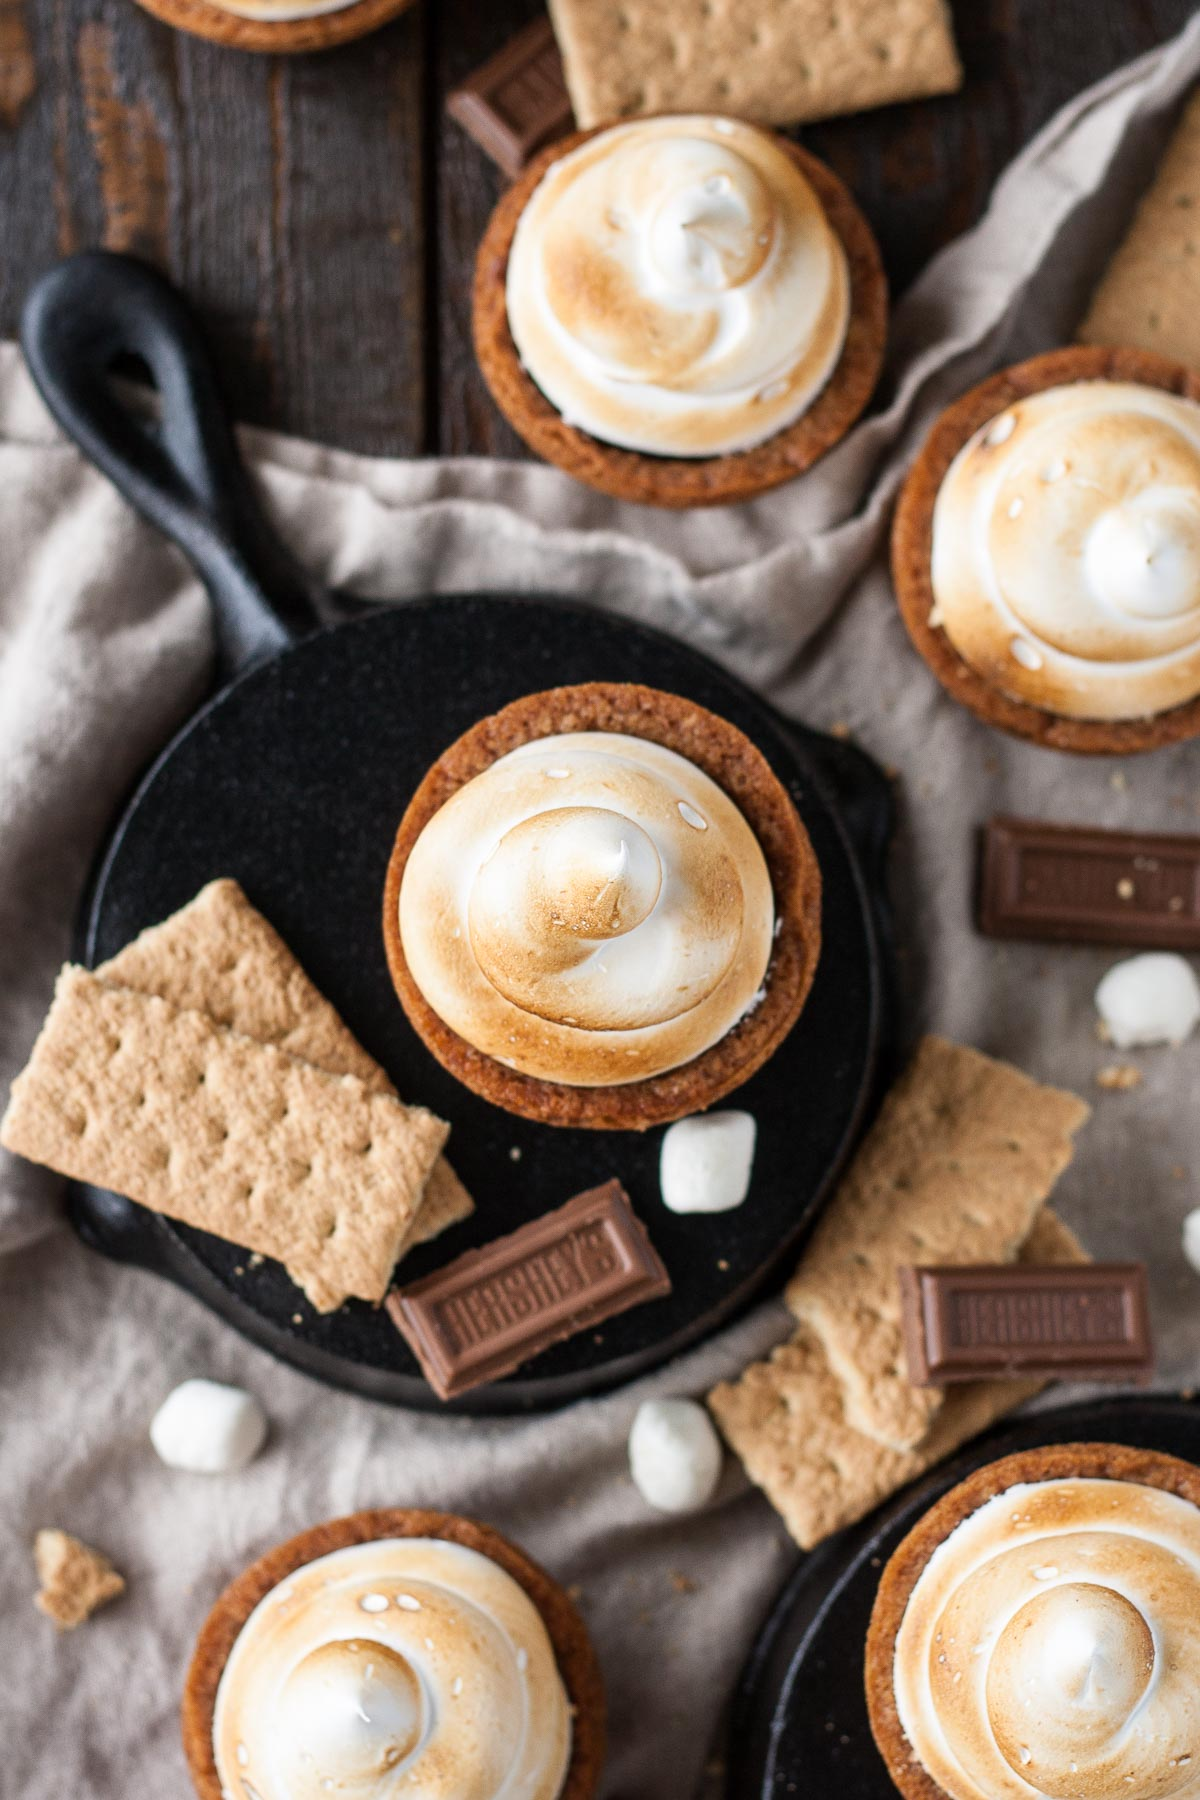 No campfire needed for these S'mores Cookie Cups! Graham cracker cookie cups filled with a Hershey's milk chocolate ganache, topped with toasted homemade marshmallow fluff. | livforcake.com